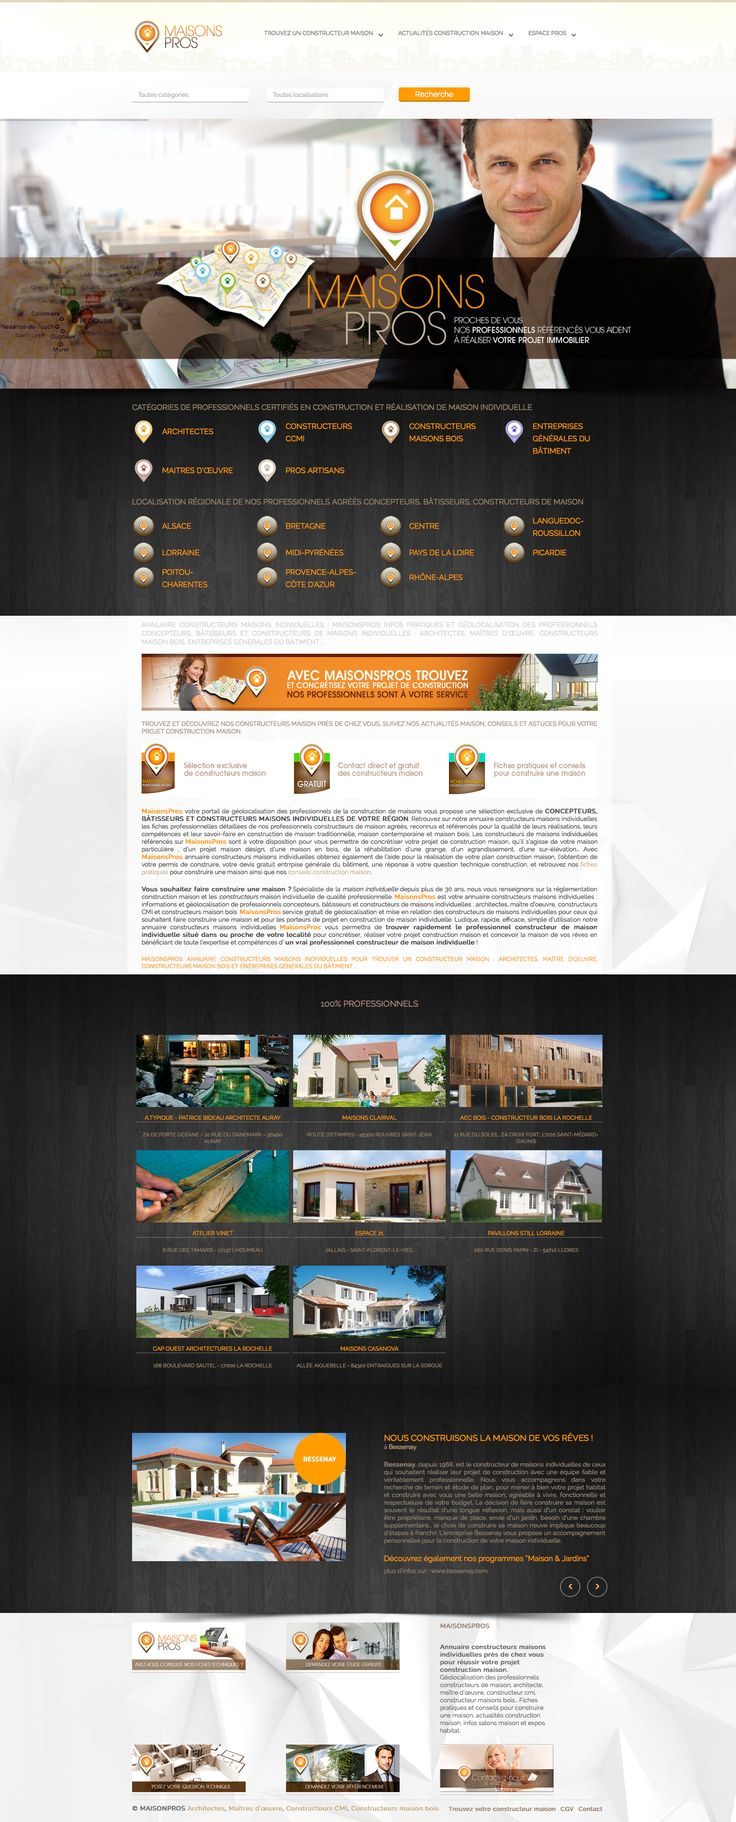 MaisonsPros your portal geolocation professional home construction offers an exclusive selection of DESIGNERS, BUILDERS AND MANUFACTURERS OF INDIVIDUAL HOUSES YOUR AREA. More info at: http://http://www.maisonspros.comwww.maisonspros.com